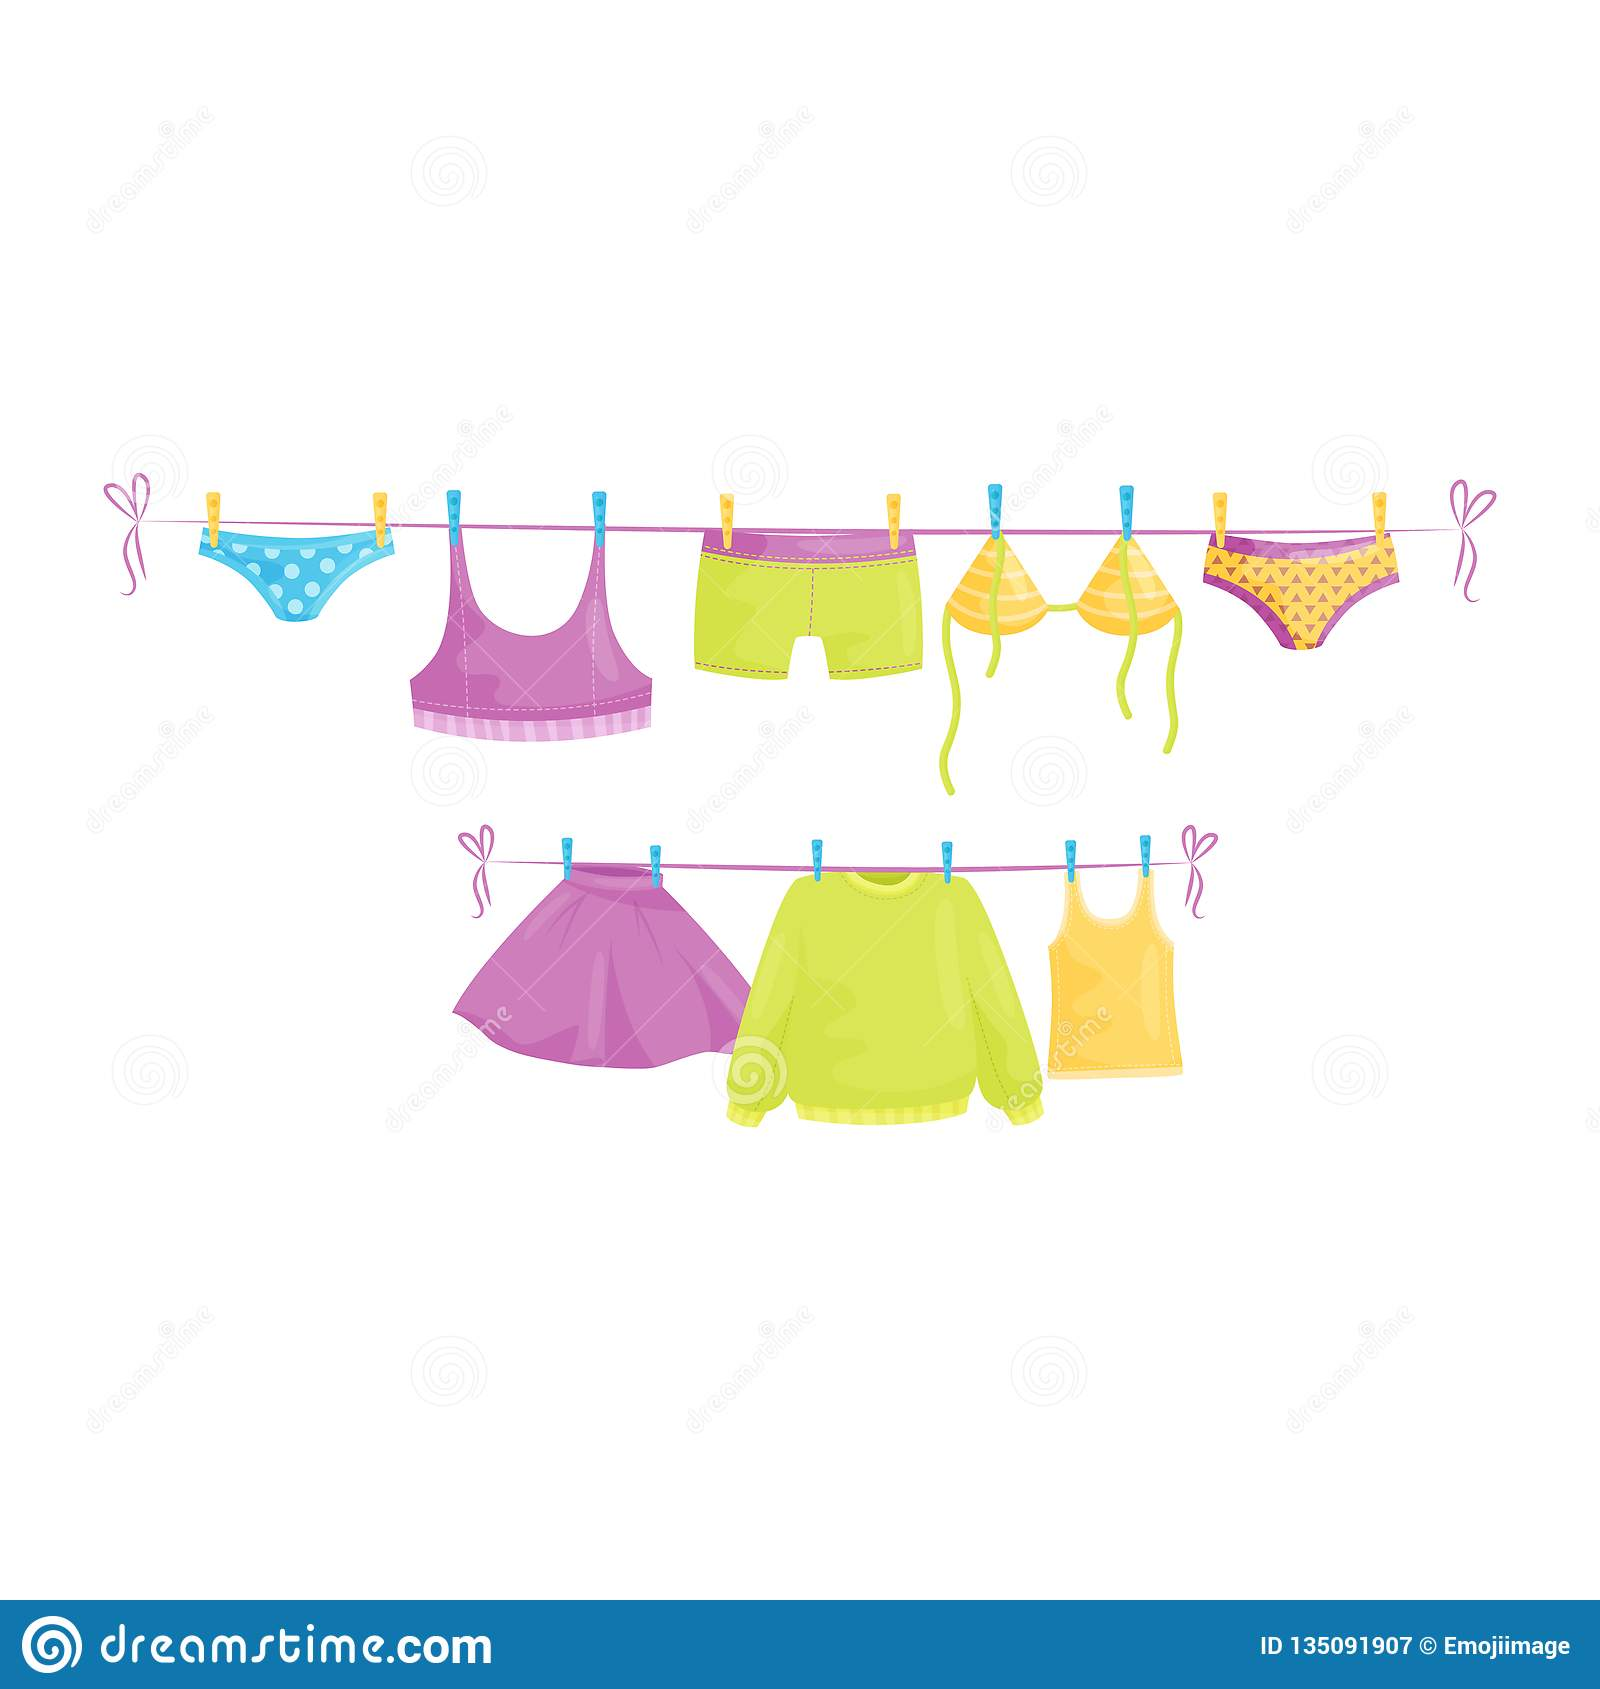 Clean clothes hanging on ropes. Female garment. Laundry theme. Flat vector design